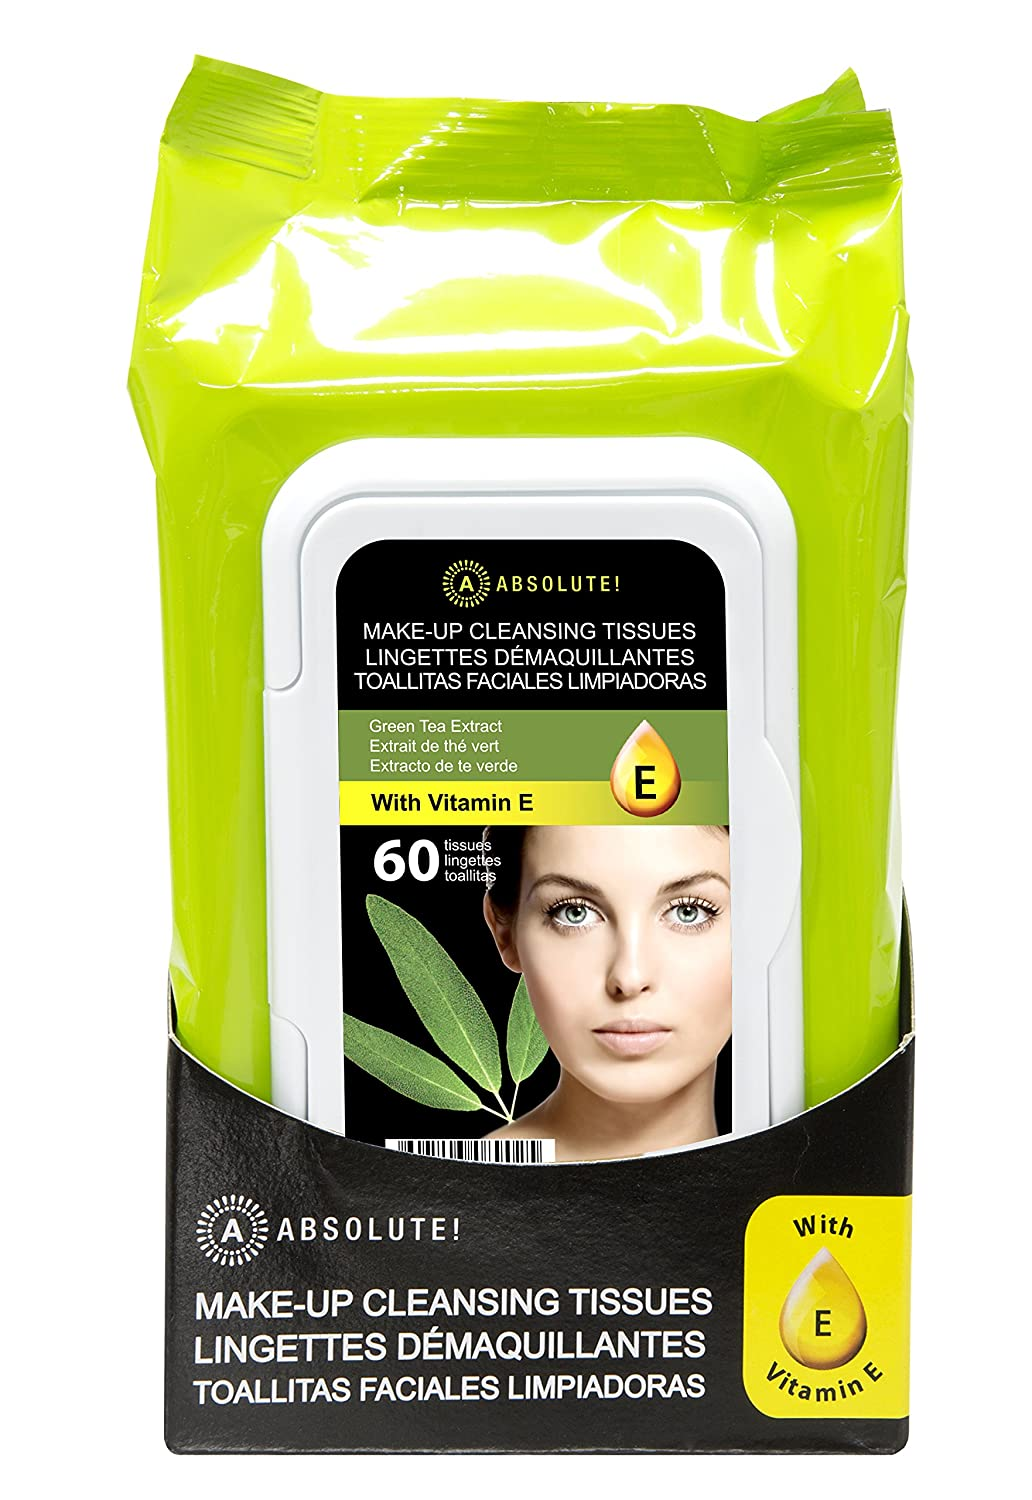 Absolute New York Make-Up Cleansing Tissues Green Tea Extract (60 CT)